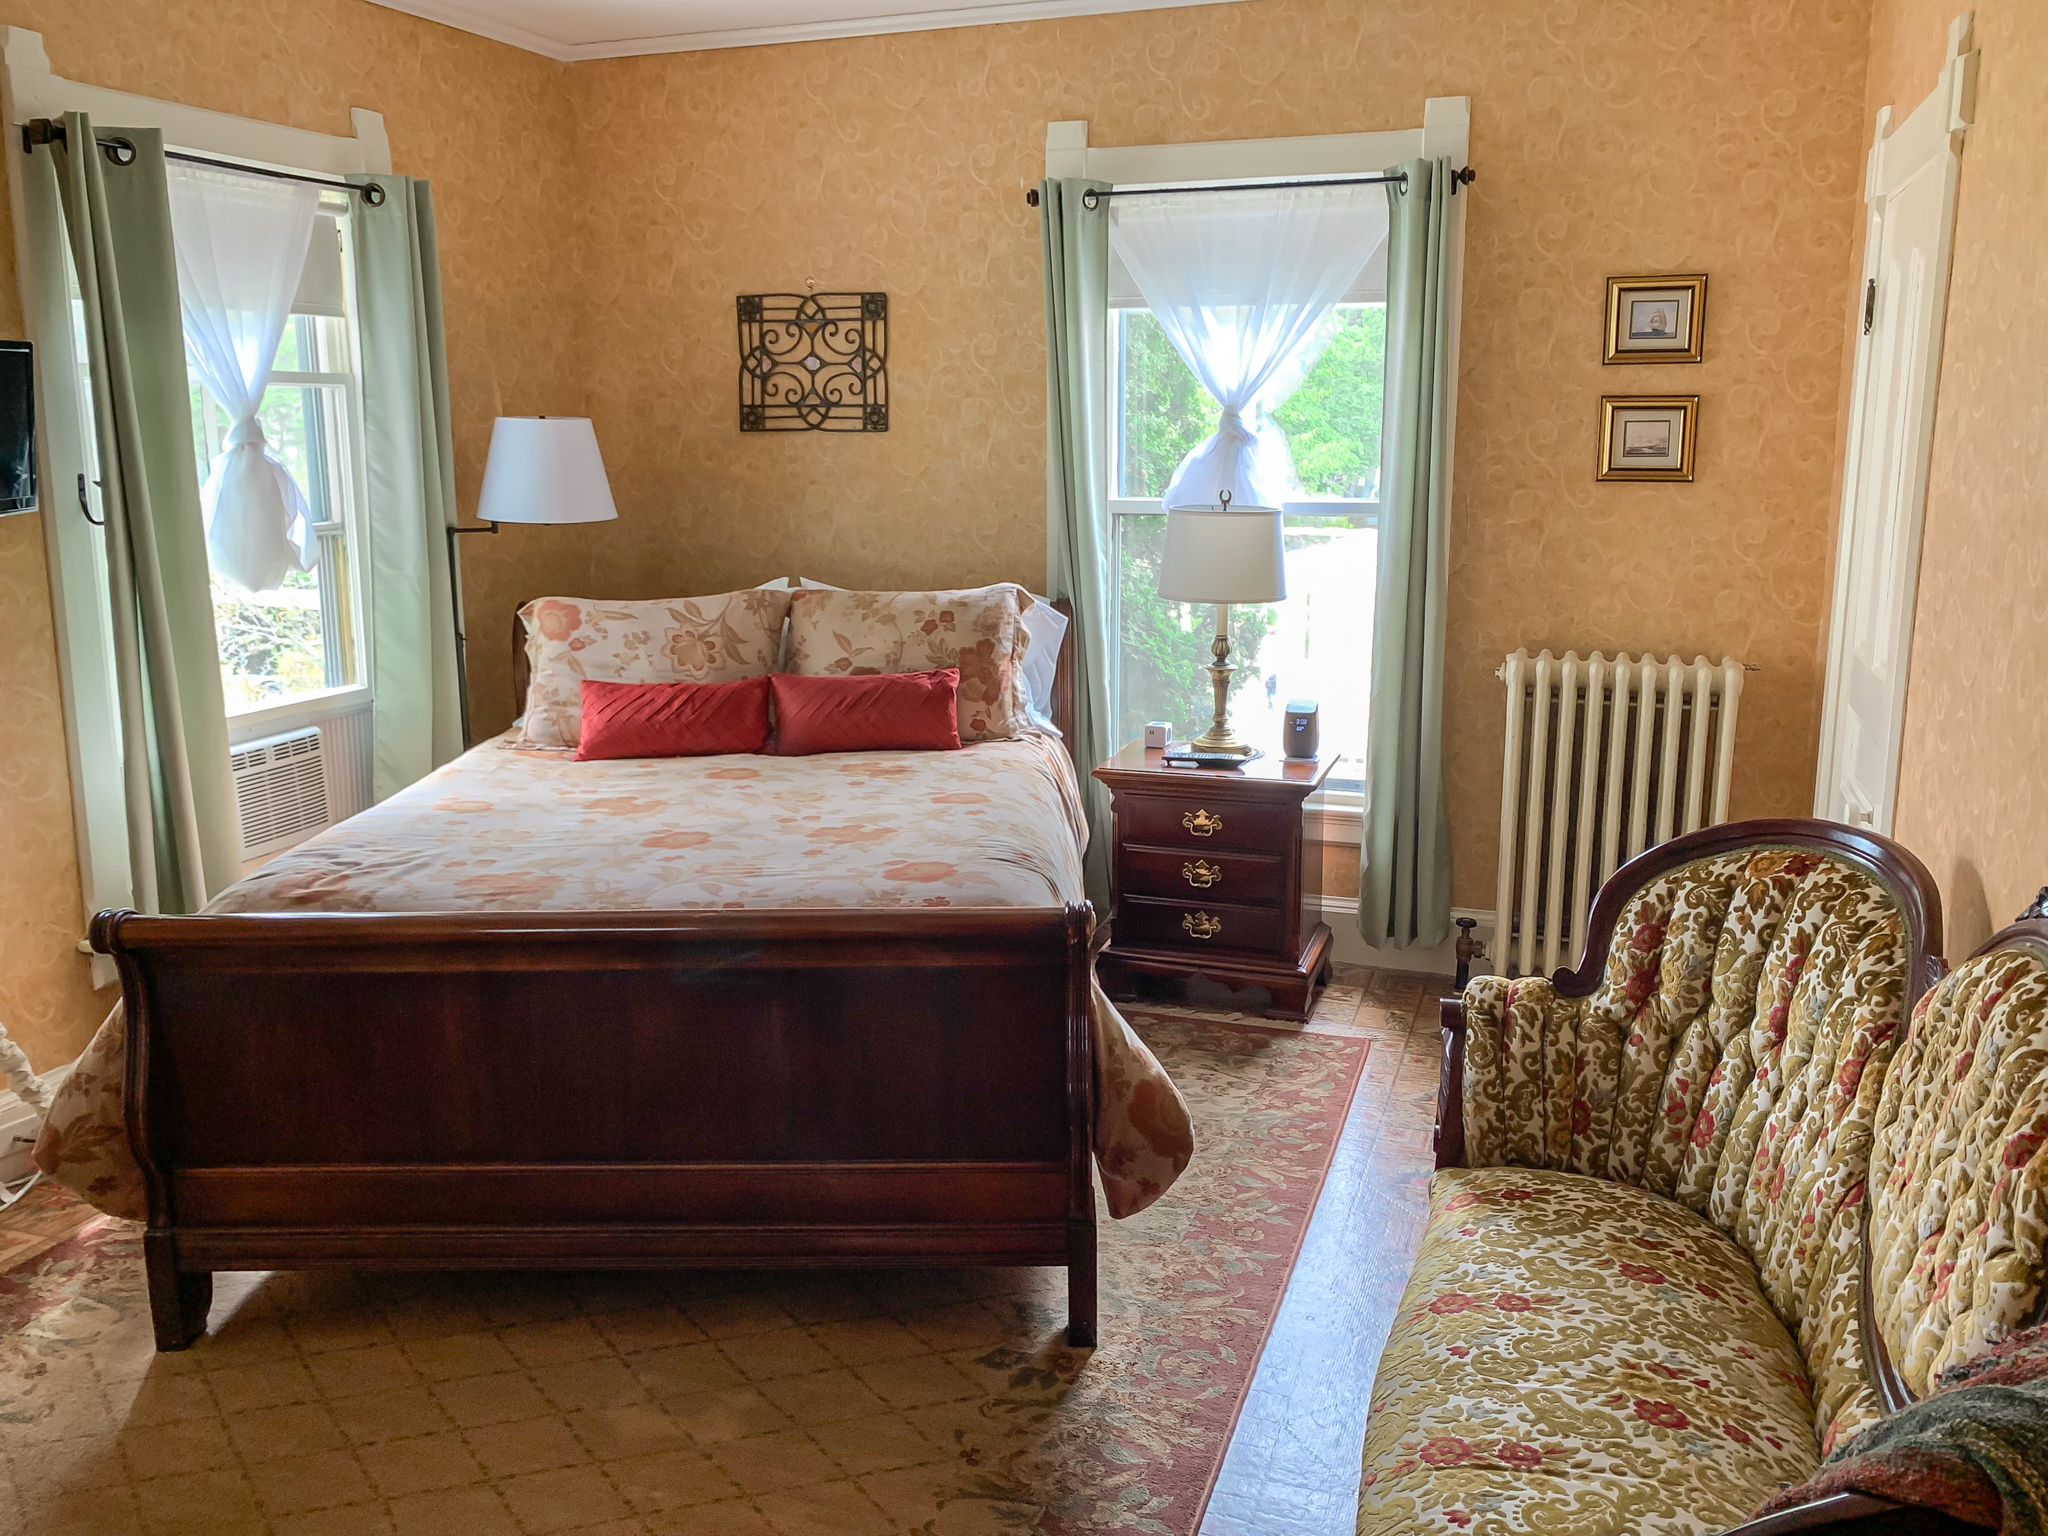 North Haven - A queen-sized cherry sleigh bed anchors this guest room in classic victorian style. Located on the second floor.Room Features: Standard queen bedded room, full en-suite bathroom with tub and shower.